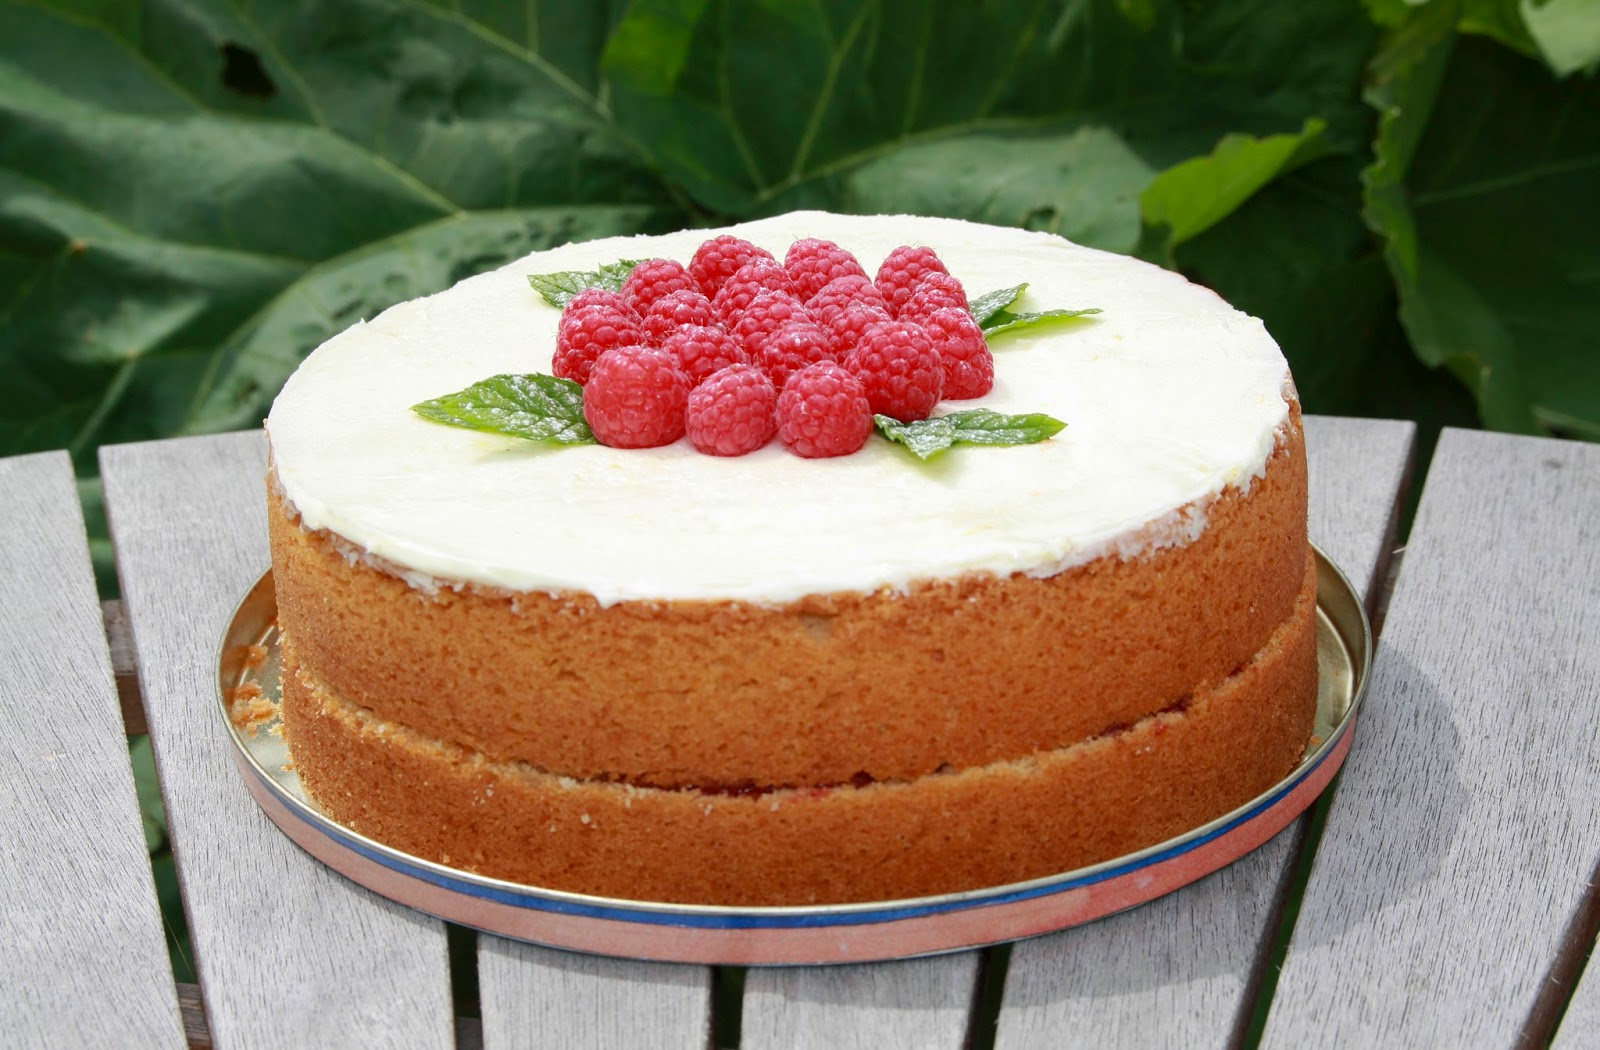 Lemon and raspberry Madeira cake topped with lemon buttercream and raspberries